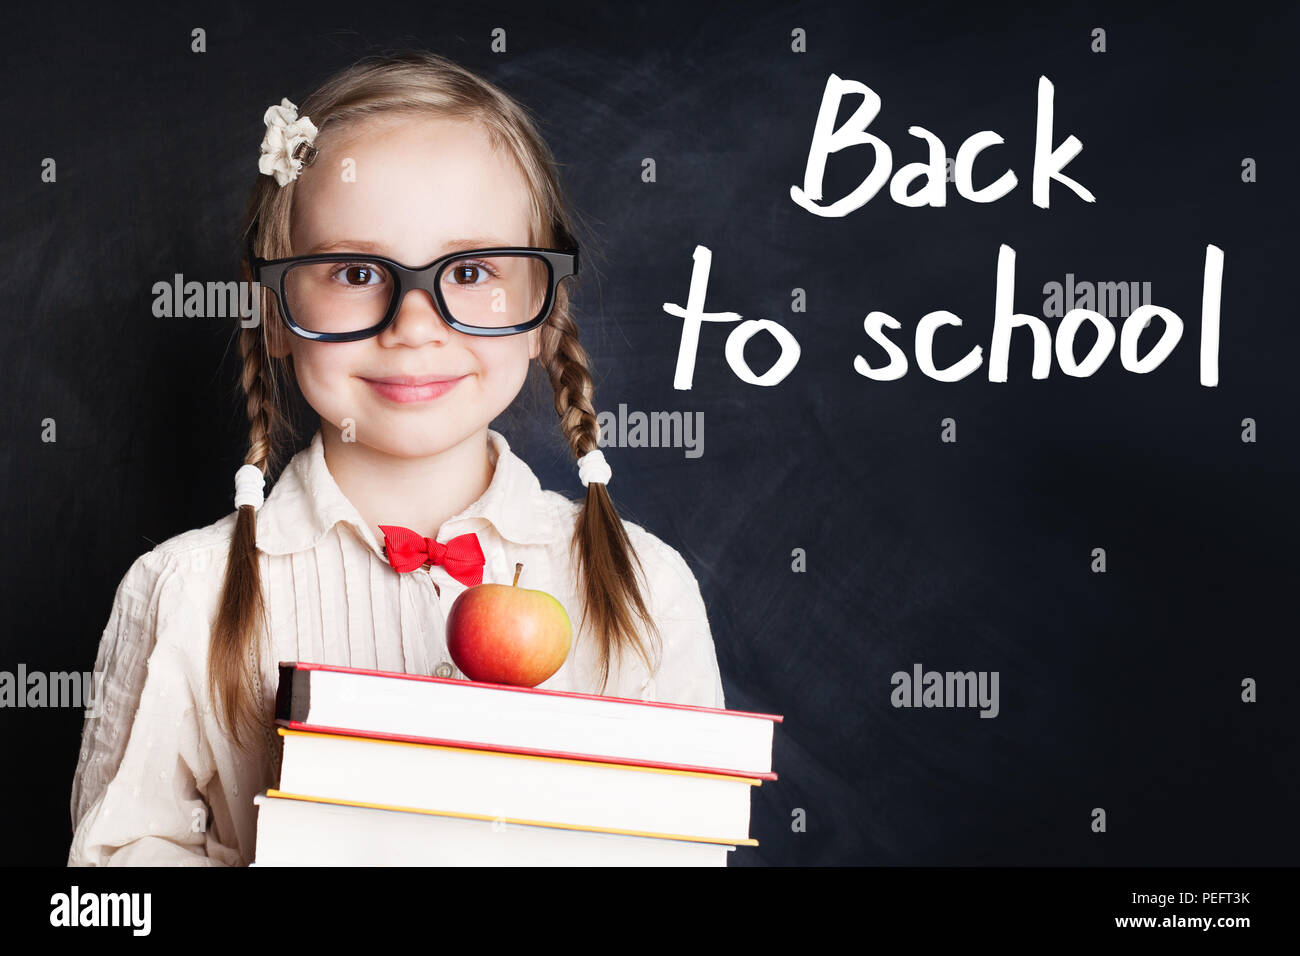 f7b6c9177a85 Smiling child girl in school uniform holding books and apple against chalk  board background. Back to school concept